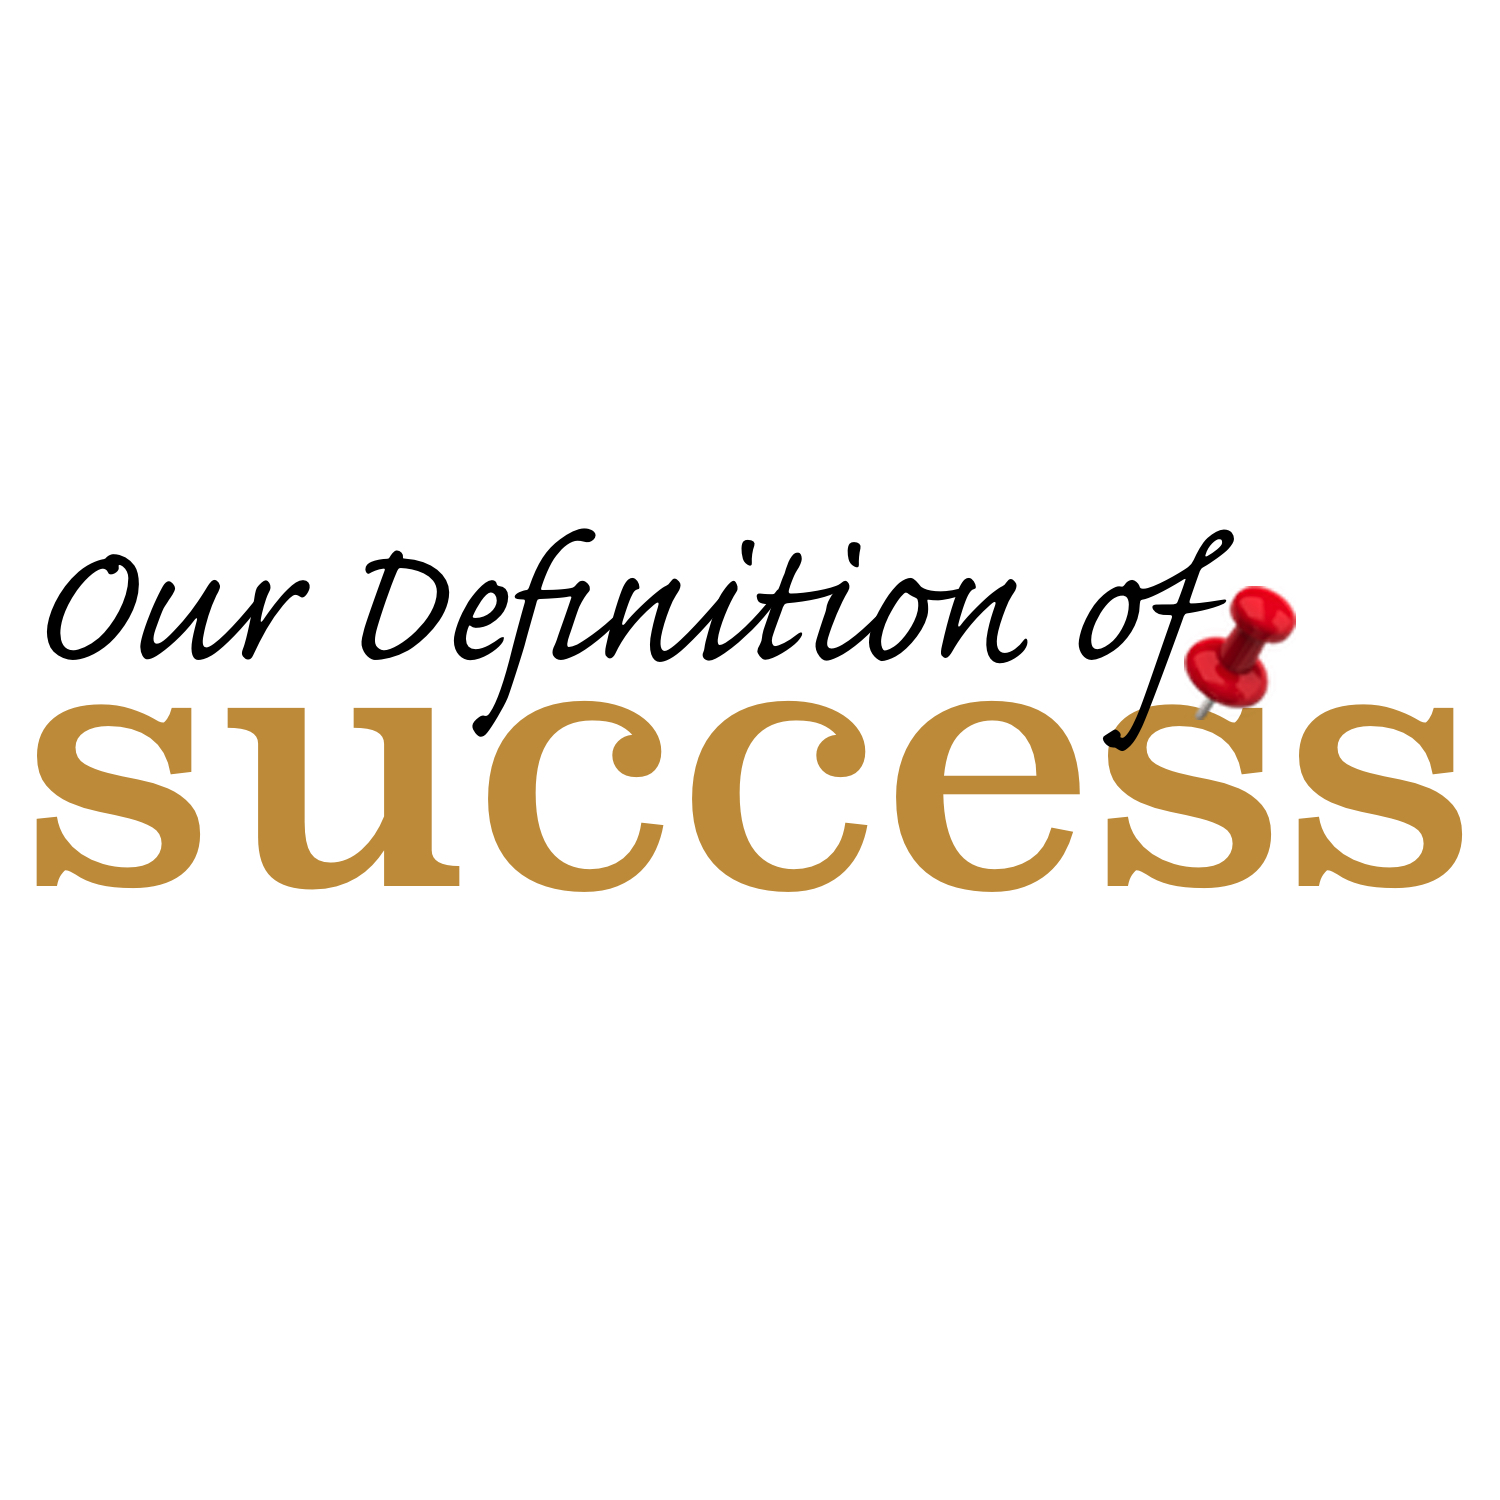 Our Definition of Success